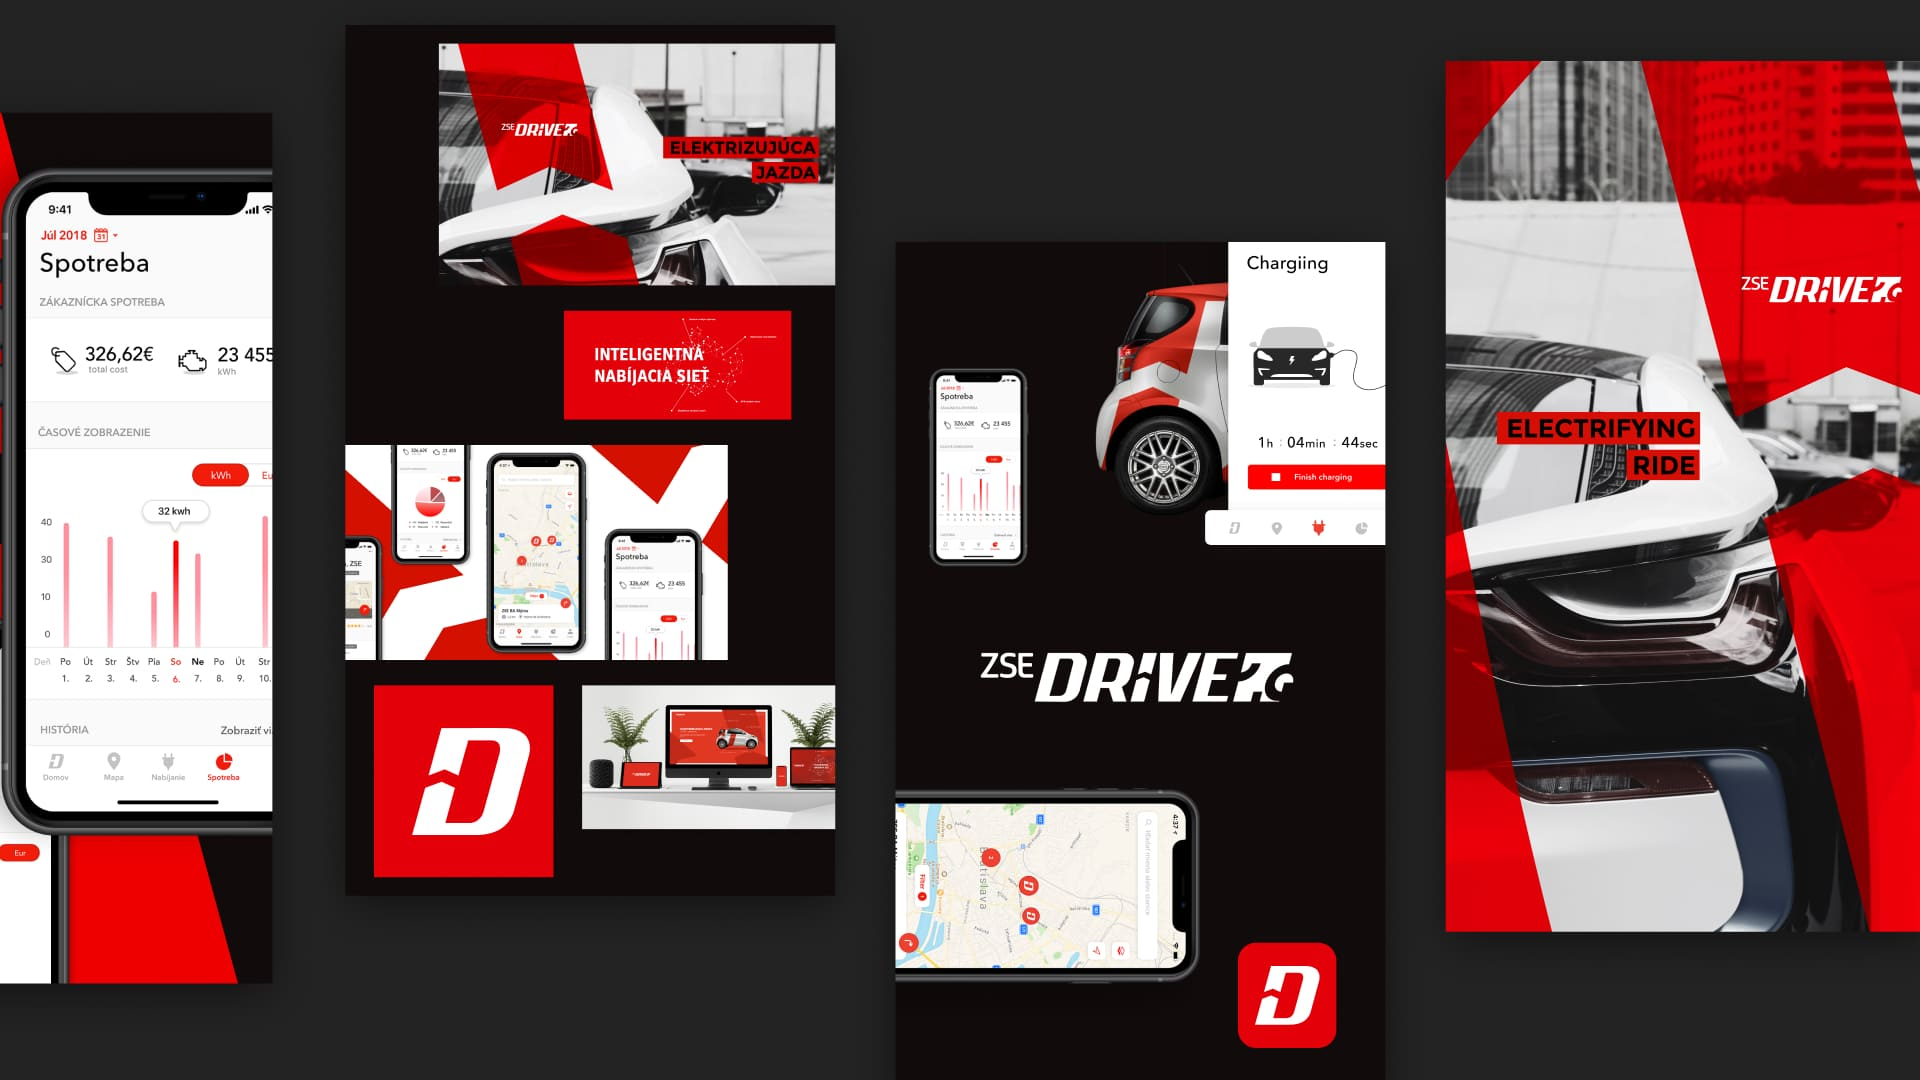 ZSE drive mobile application and web application